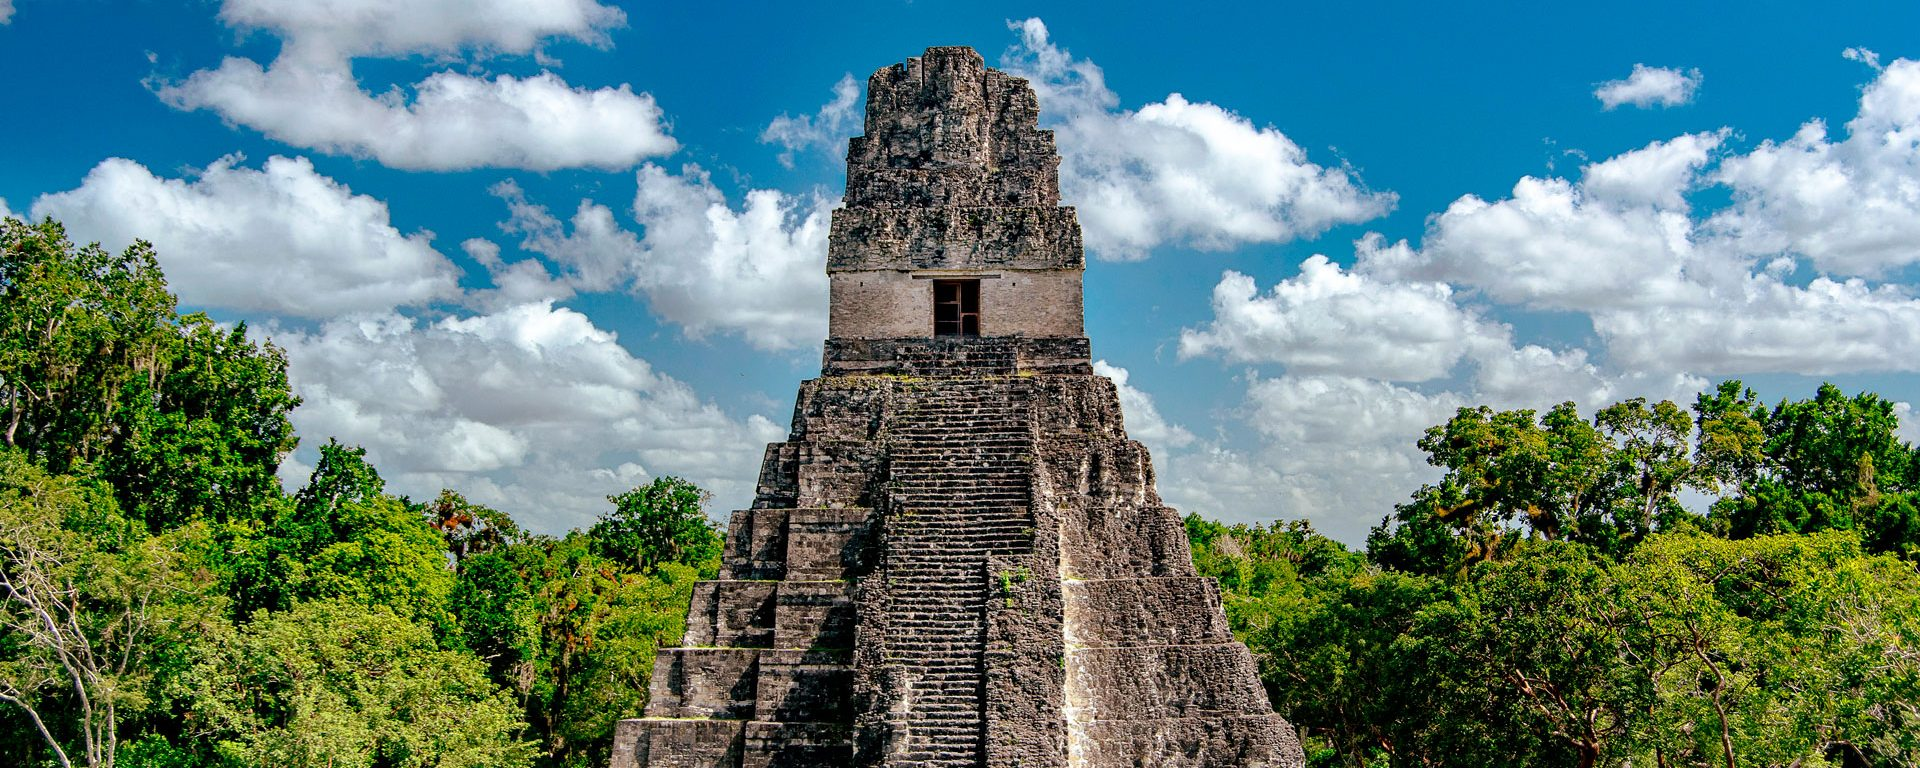 The Mayan ruins of Tikal, A UNESCO World Heritage Site, in El Petén, Guatemala